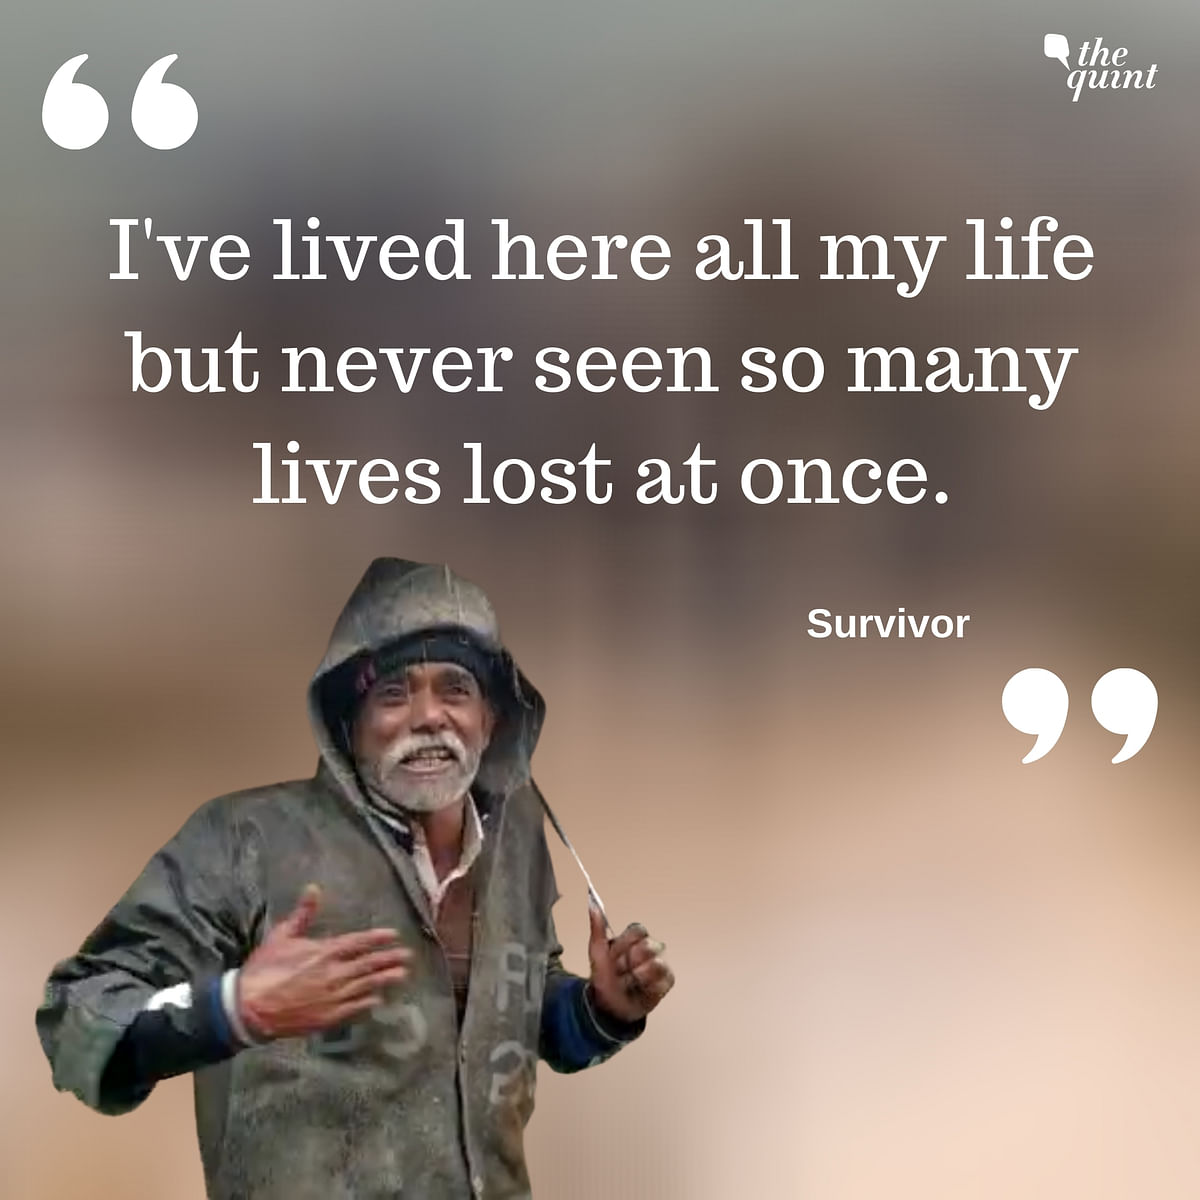 Survivor said he has never seen so many deaths at once.